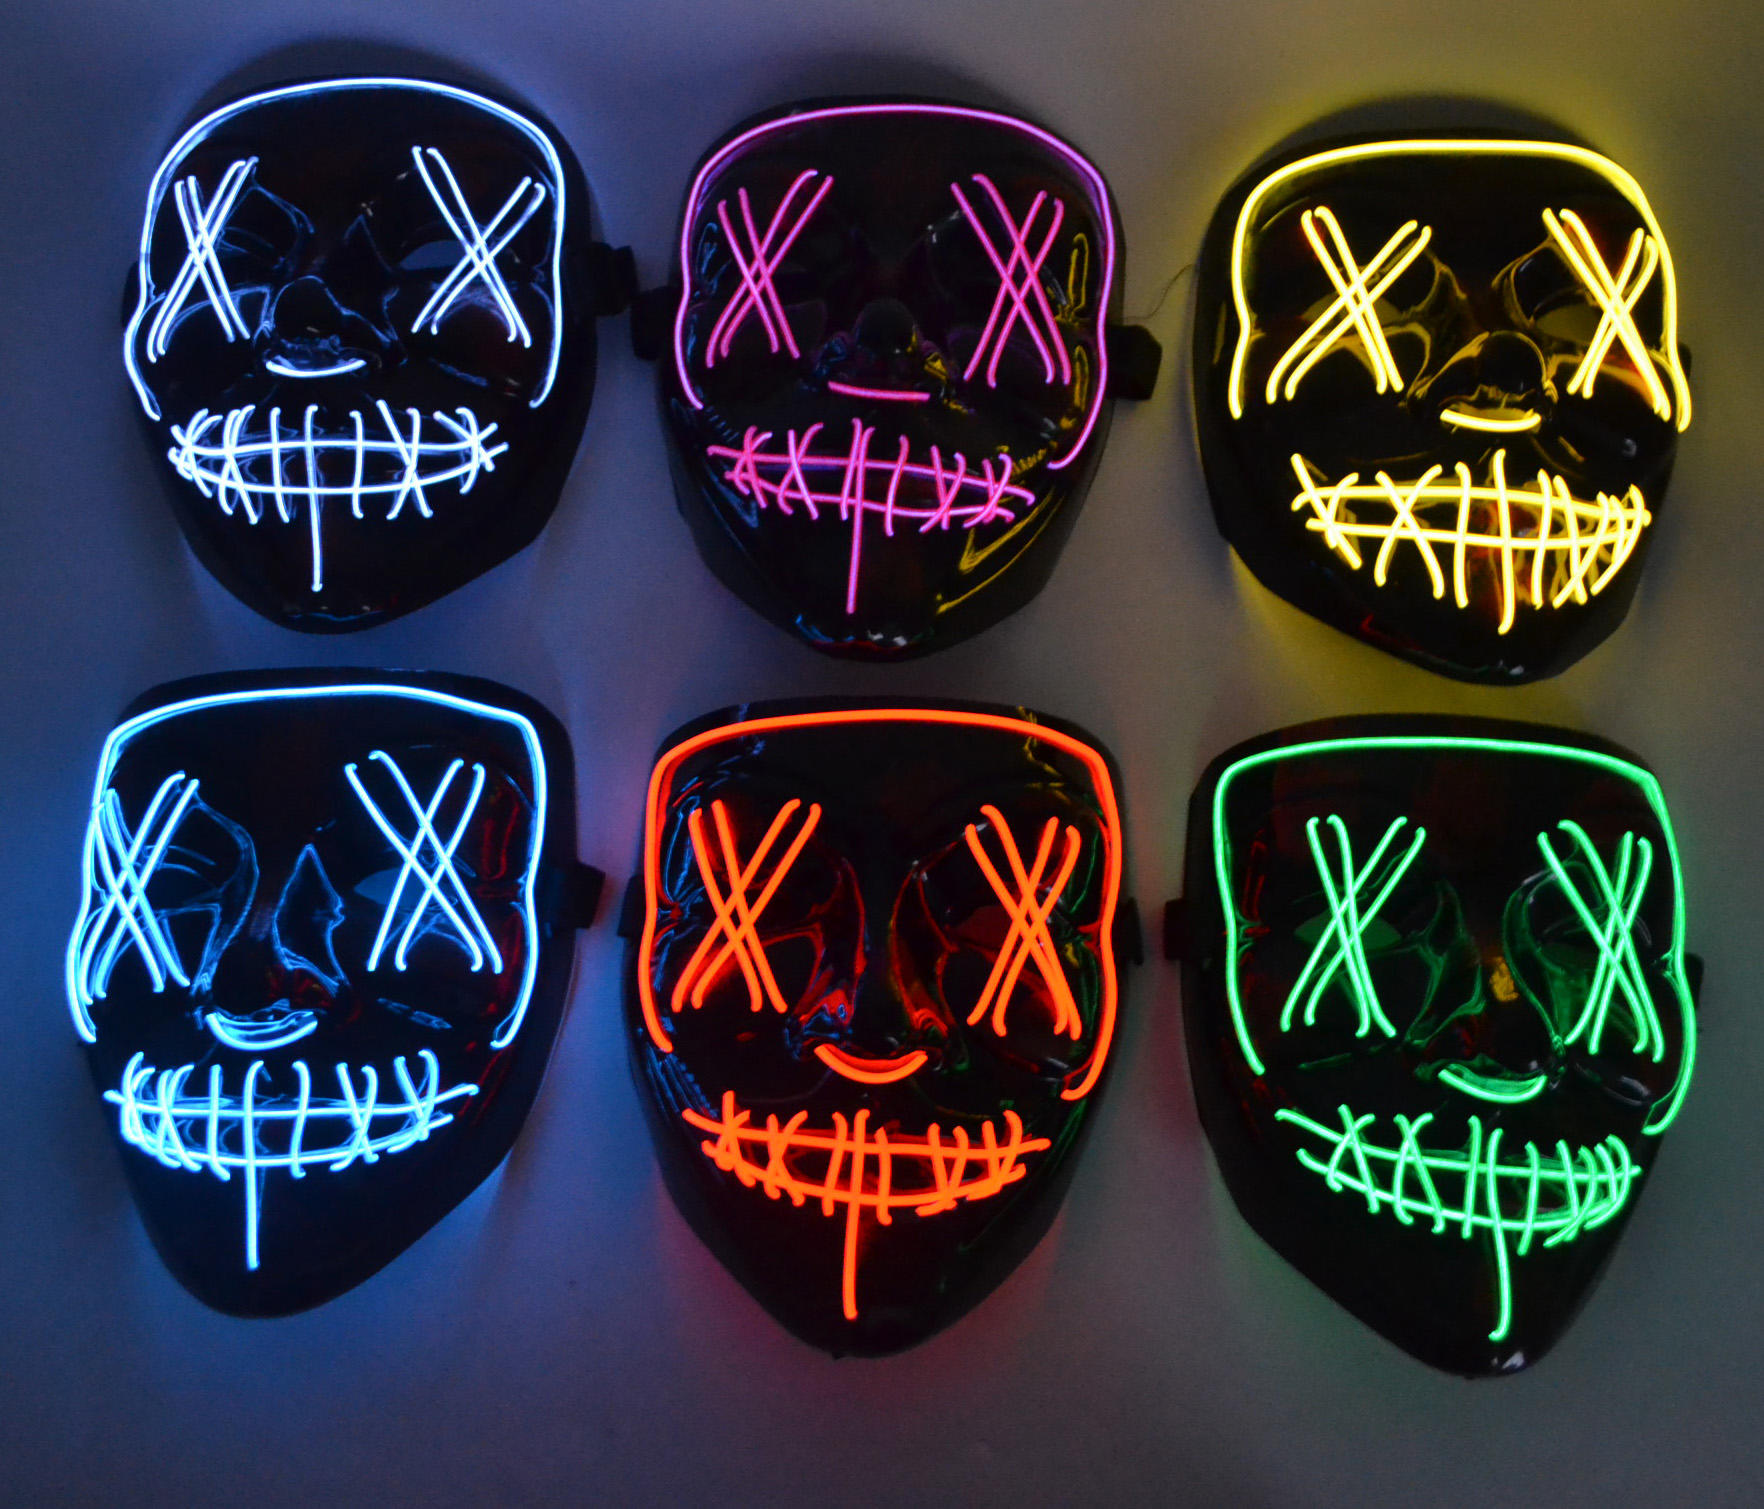 Scary LED Mask Halloween Costume Cosplay EL Wire Mask Glowing mask